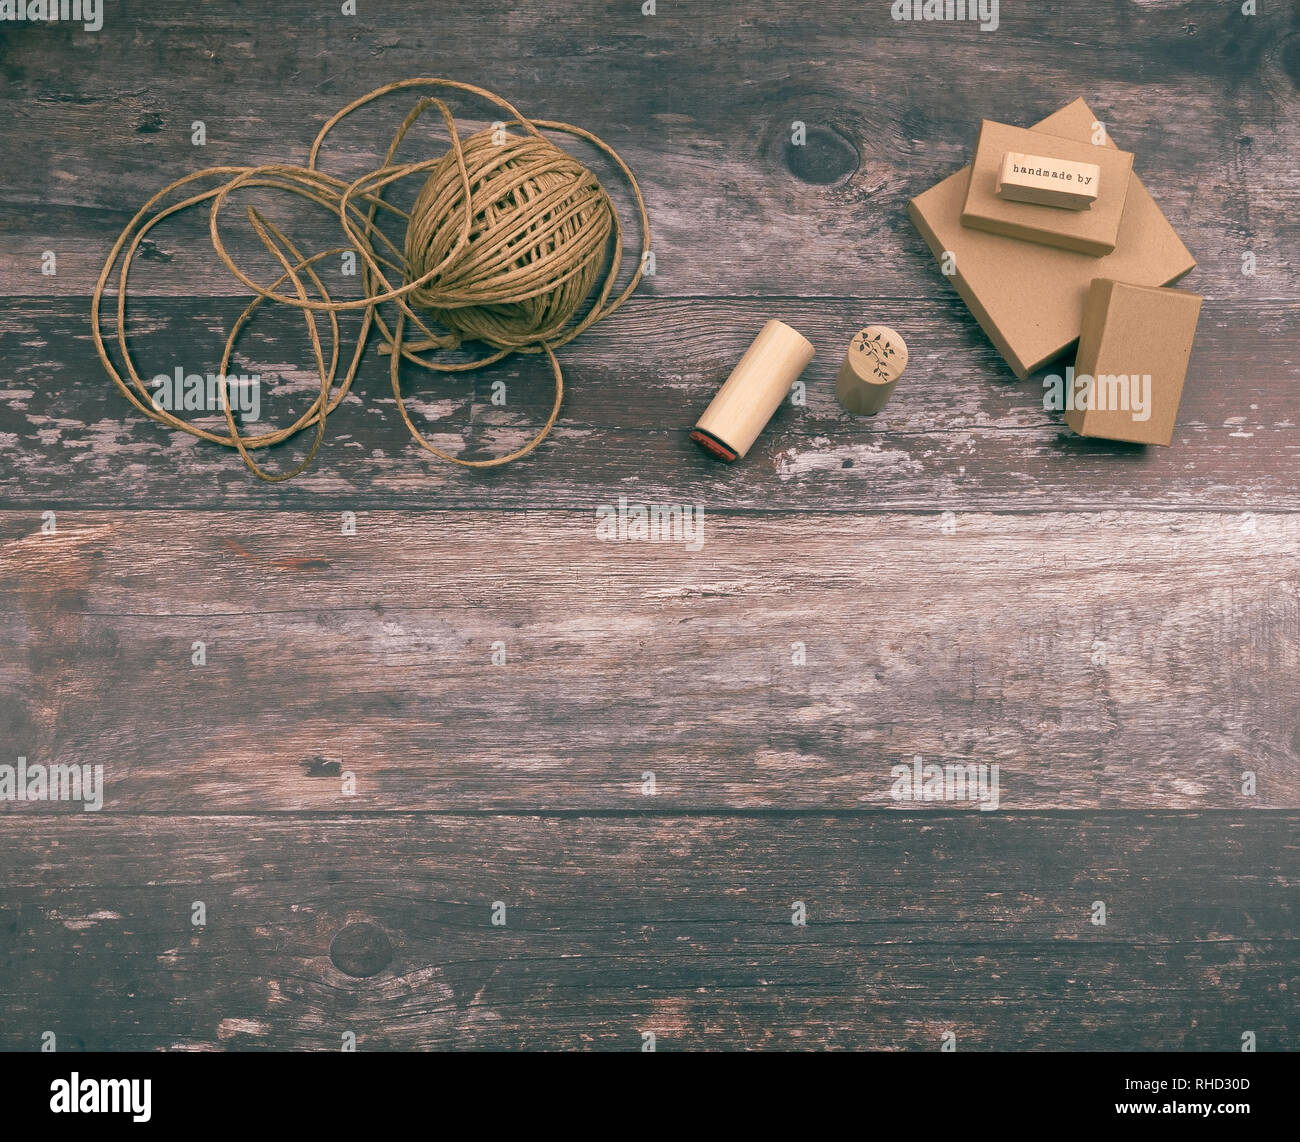 Artistic crafting supplies and art tools of hemp yarn, natural cardboard boxes and stamps for creative homemade gift wrapping and handmade crafts - Stock Image